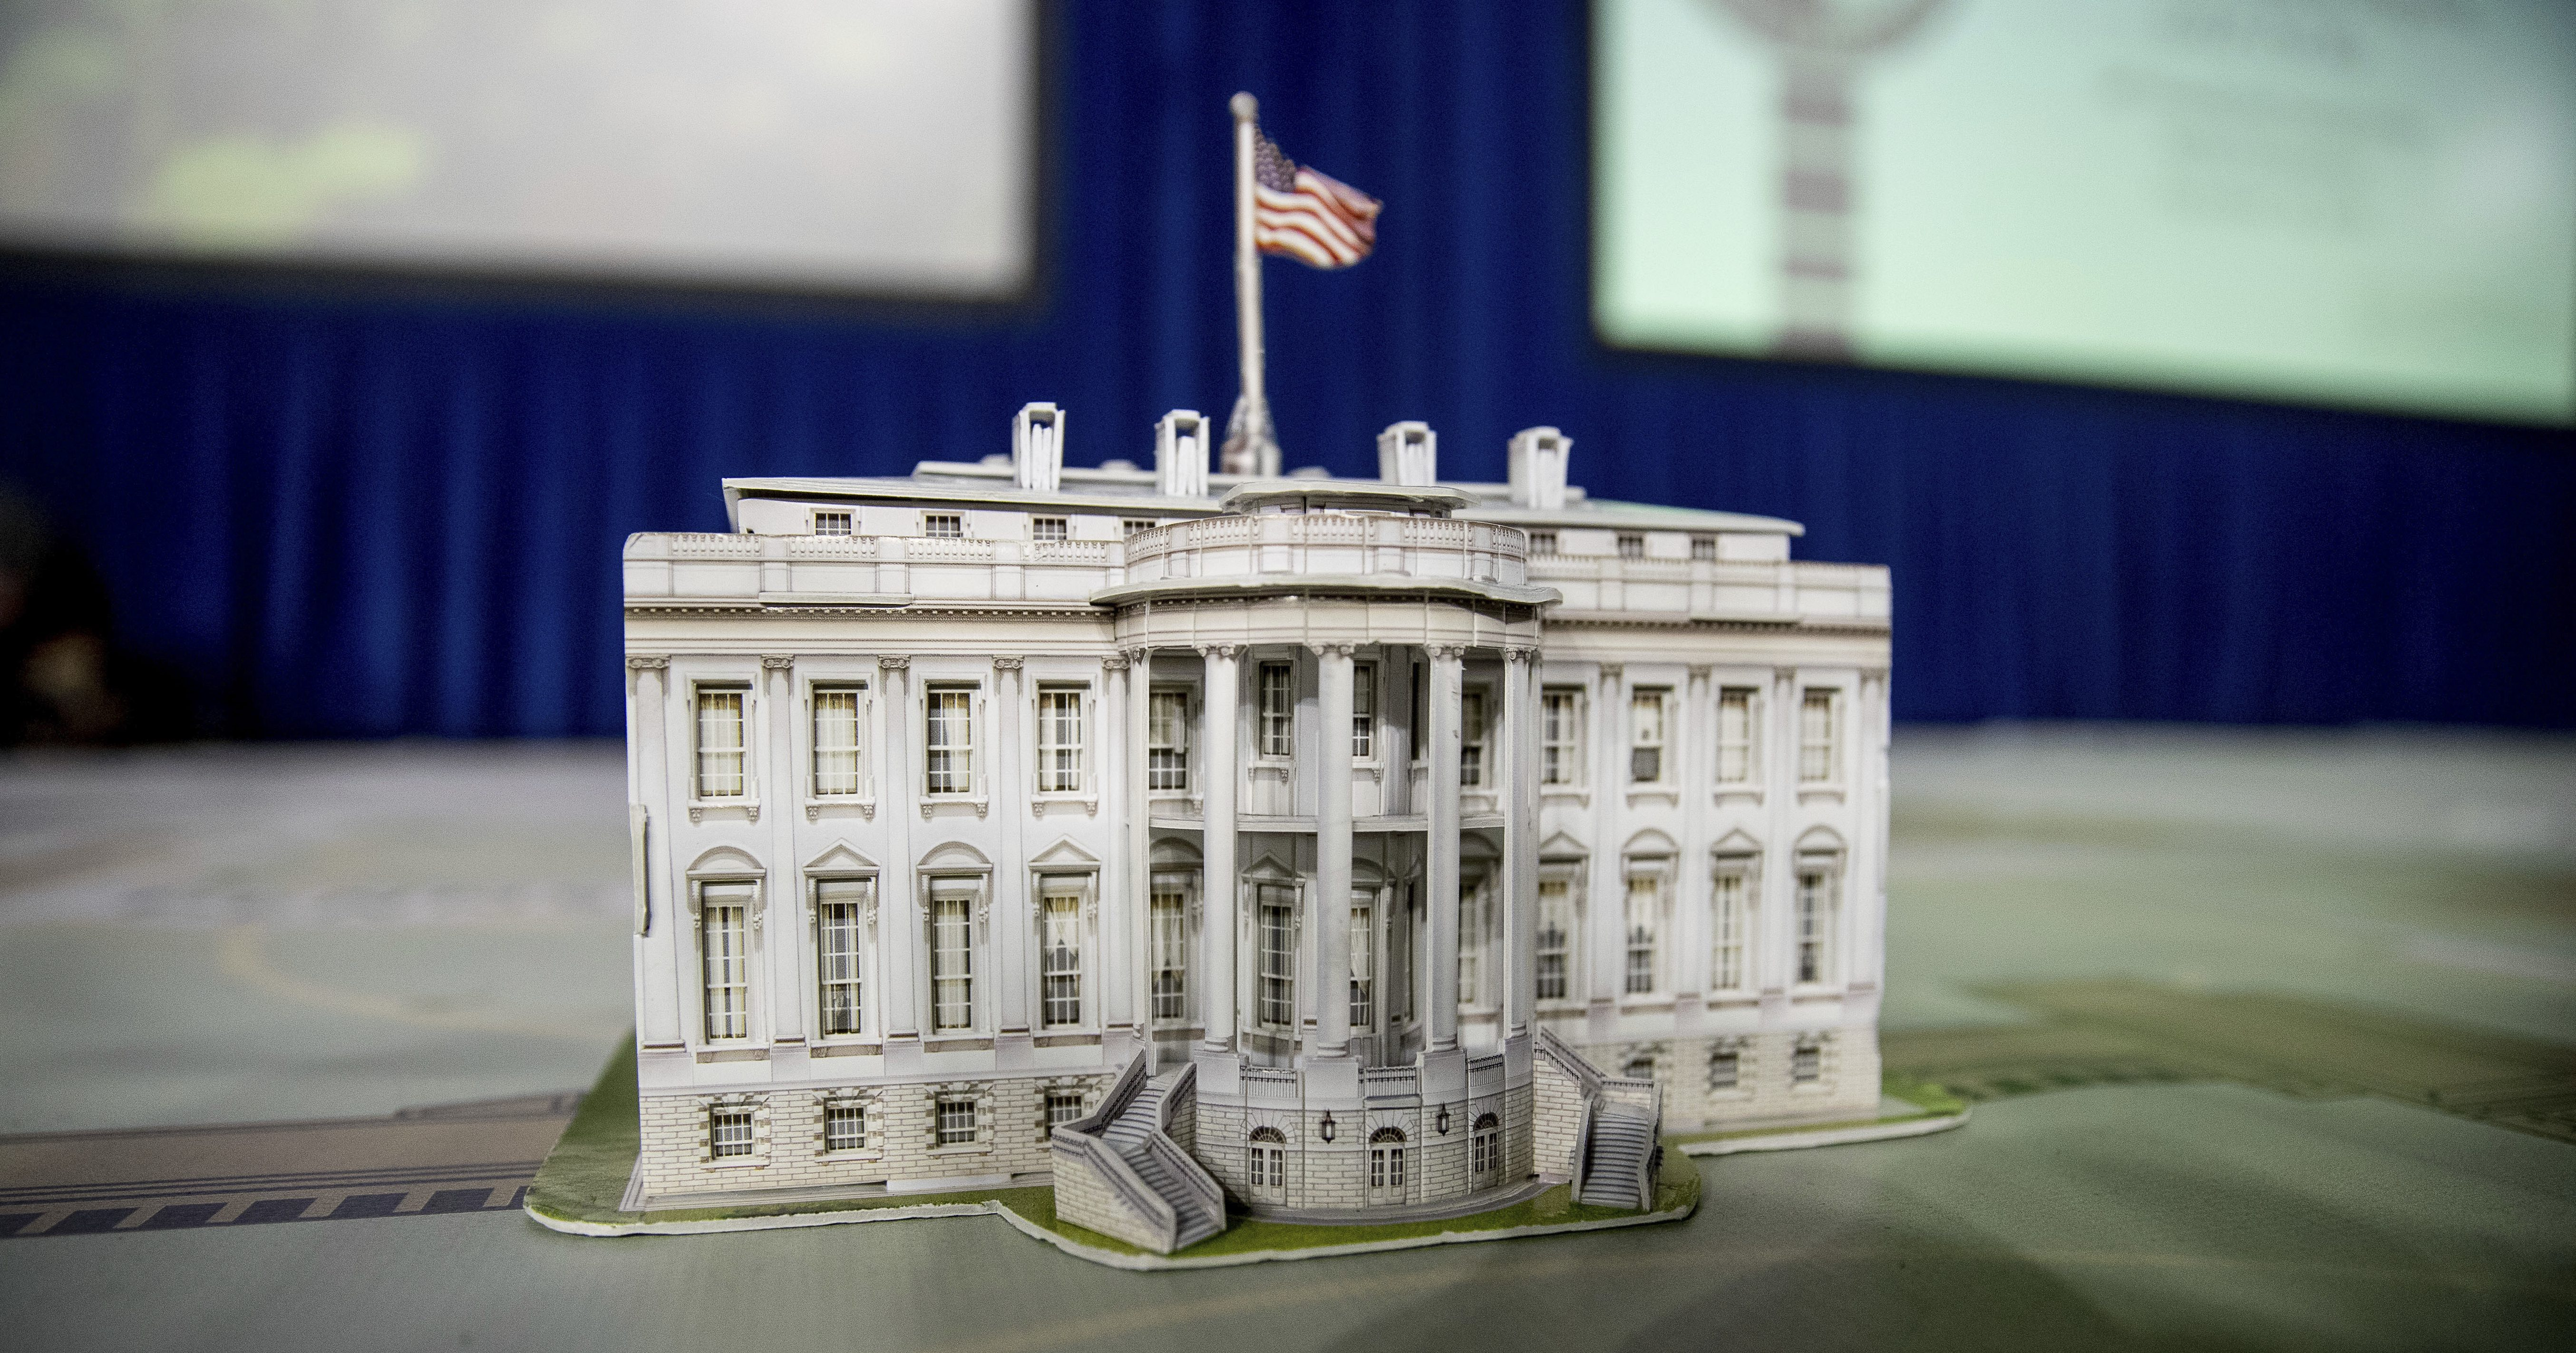 A model of the White House is displayed.